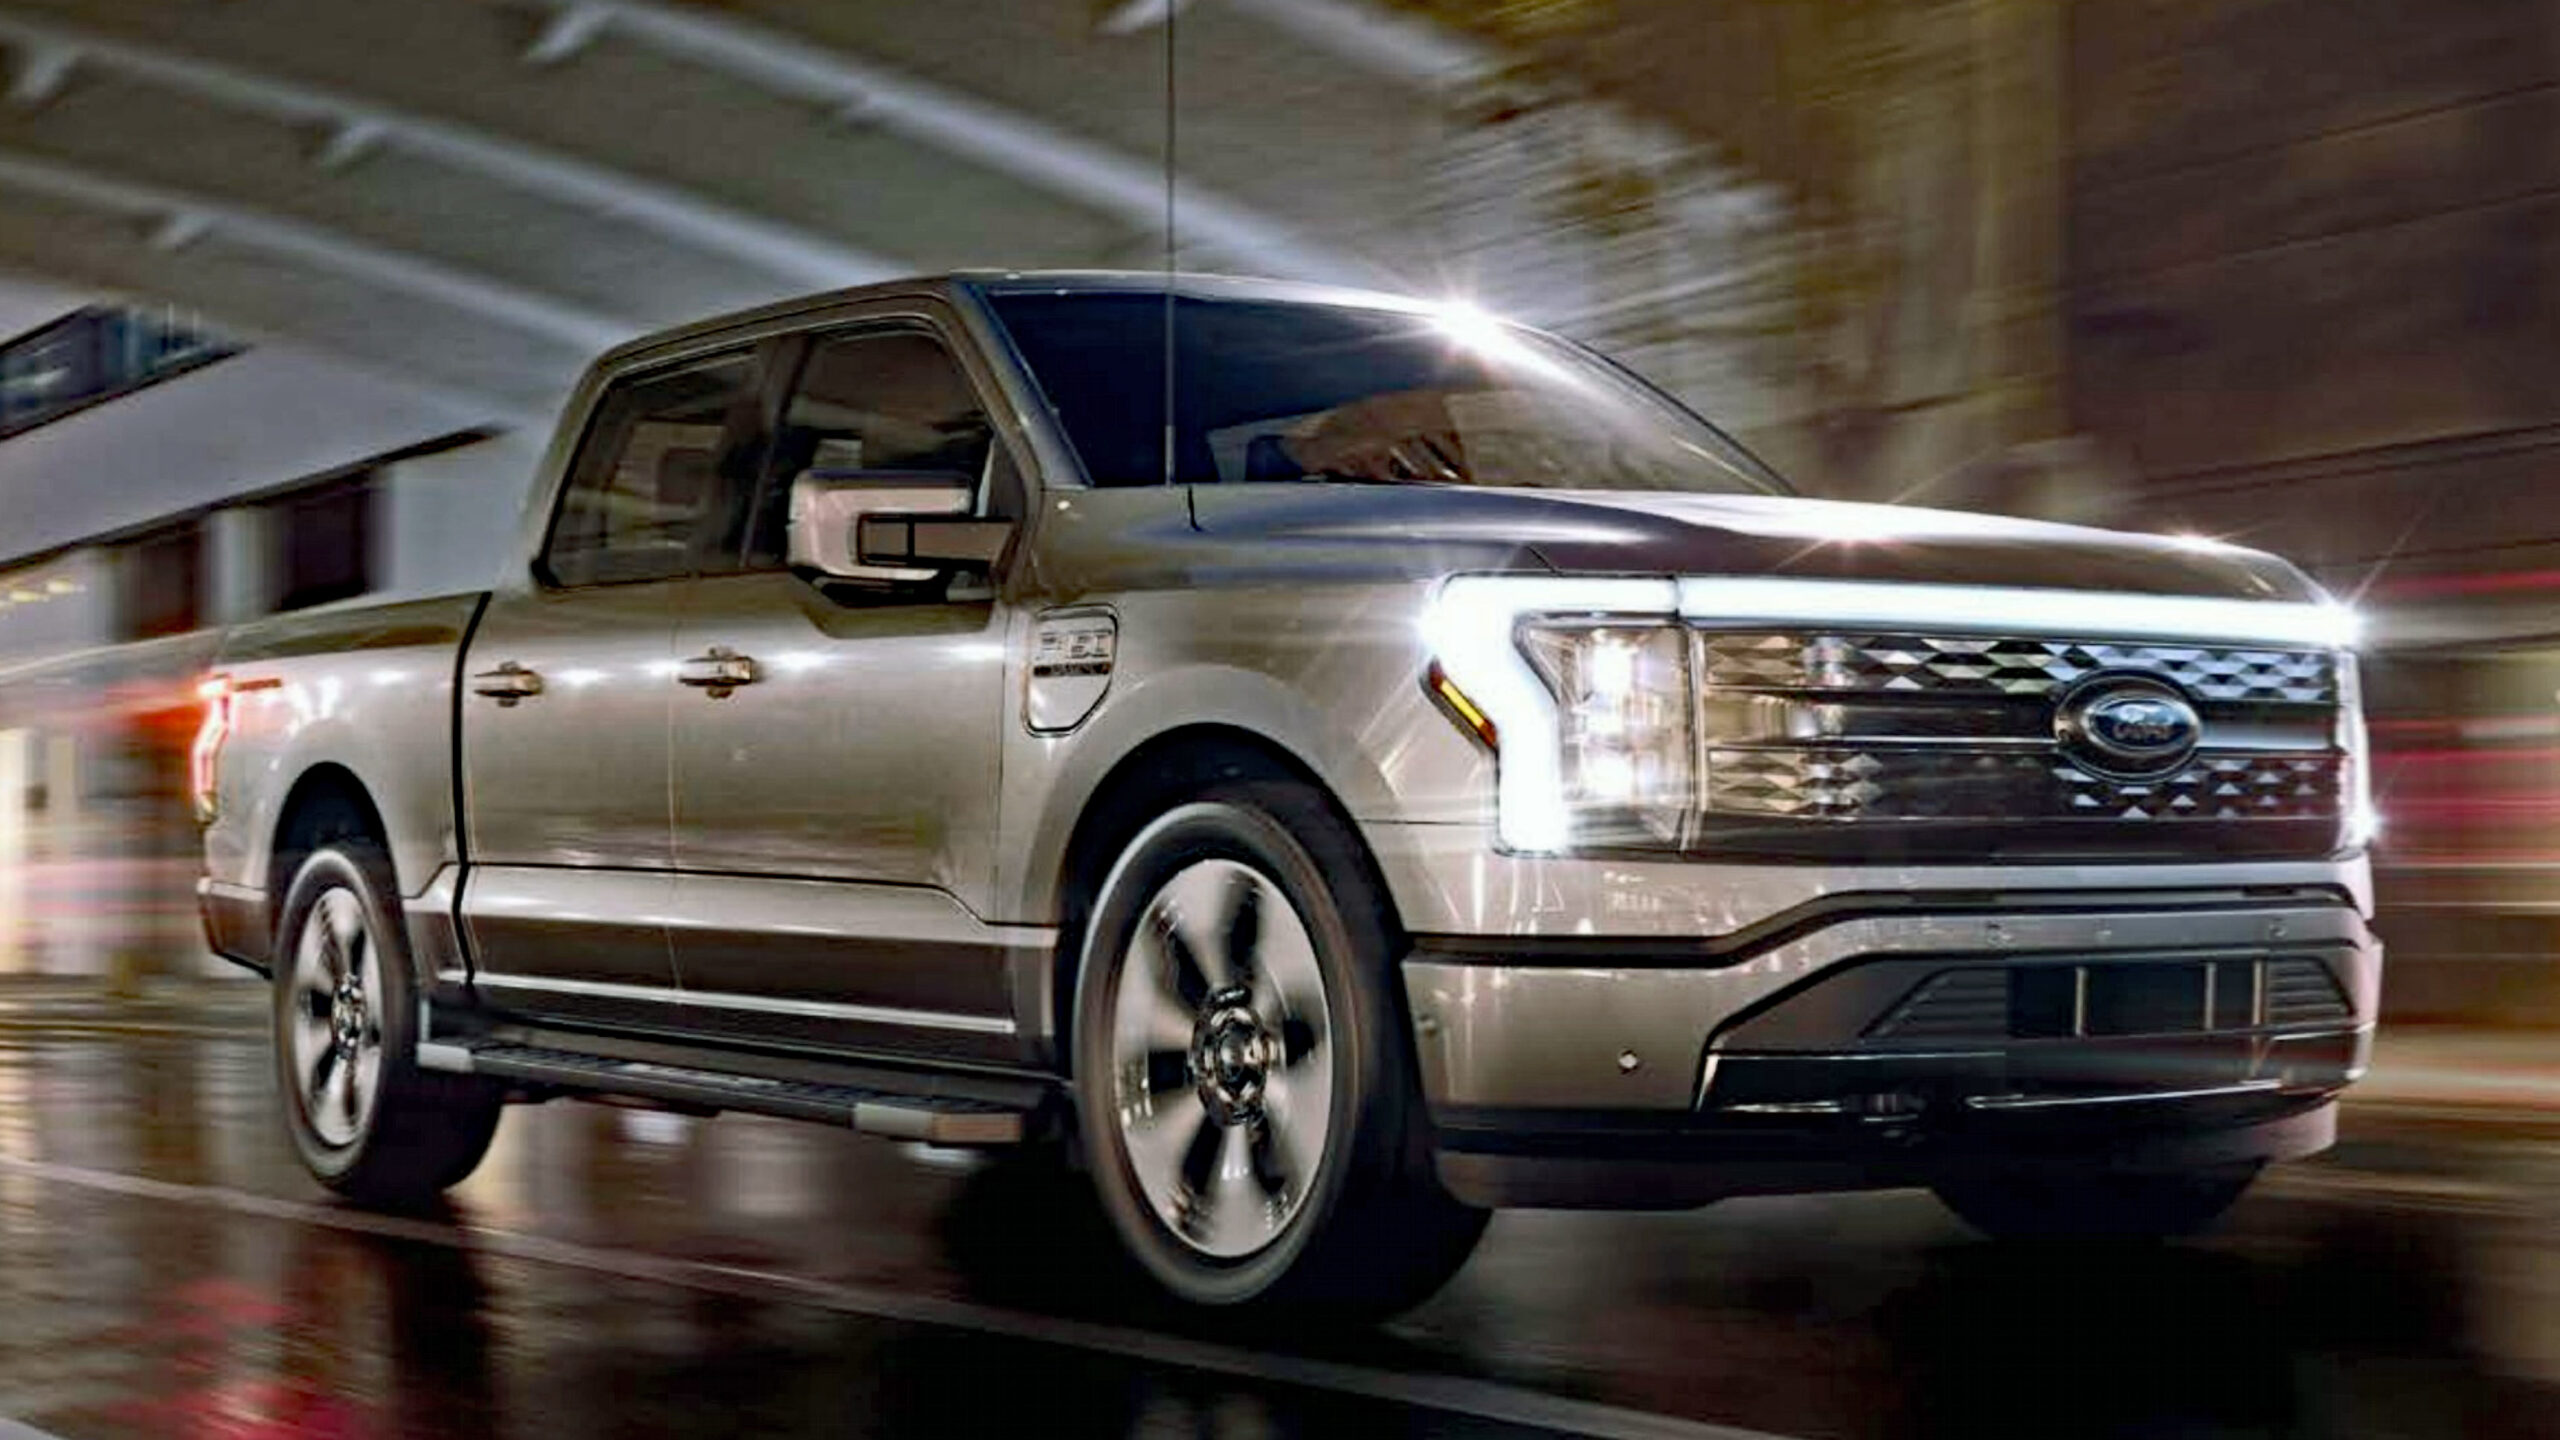 Electric F-150 Lightning on the road.